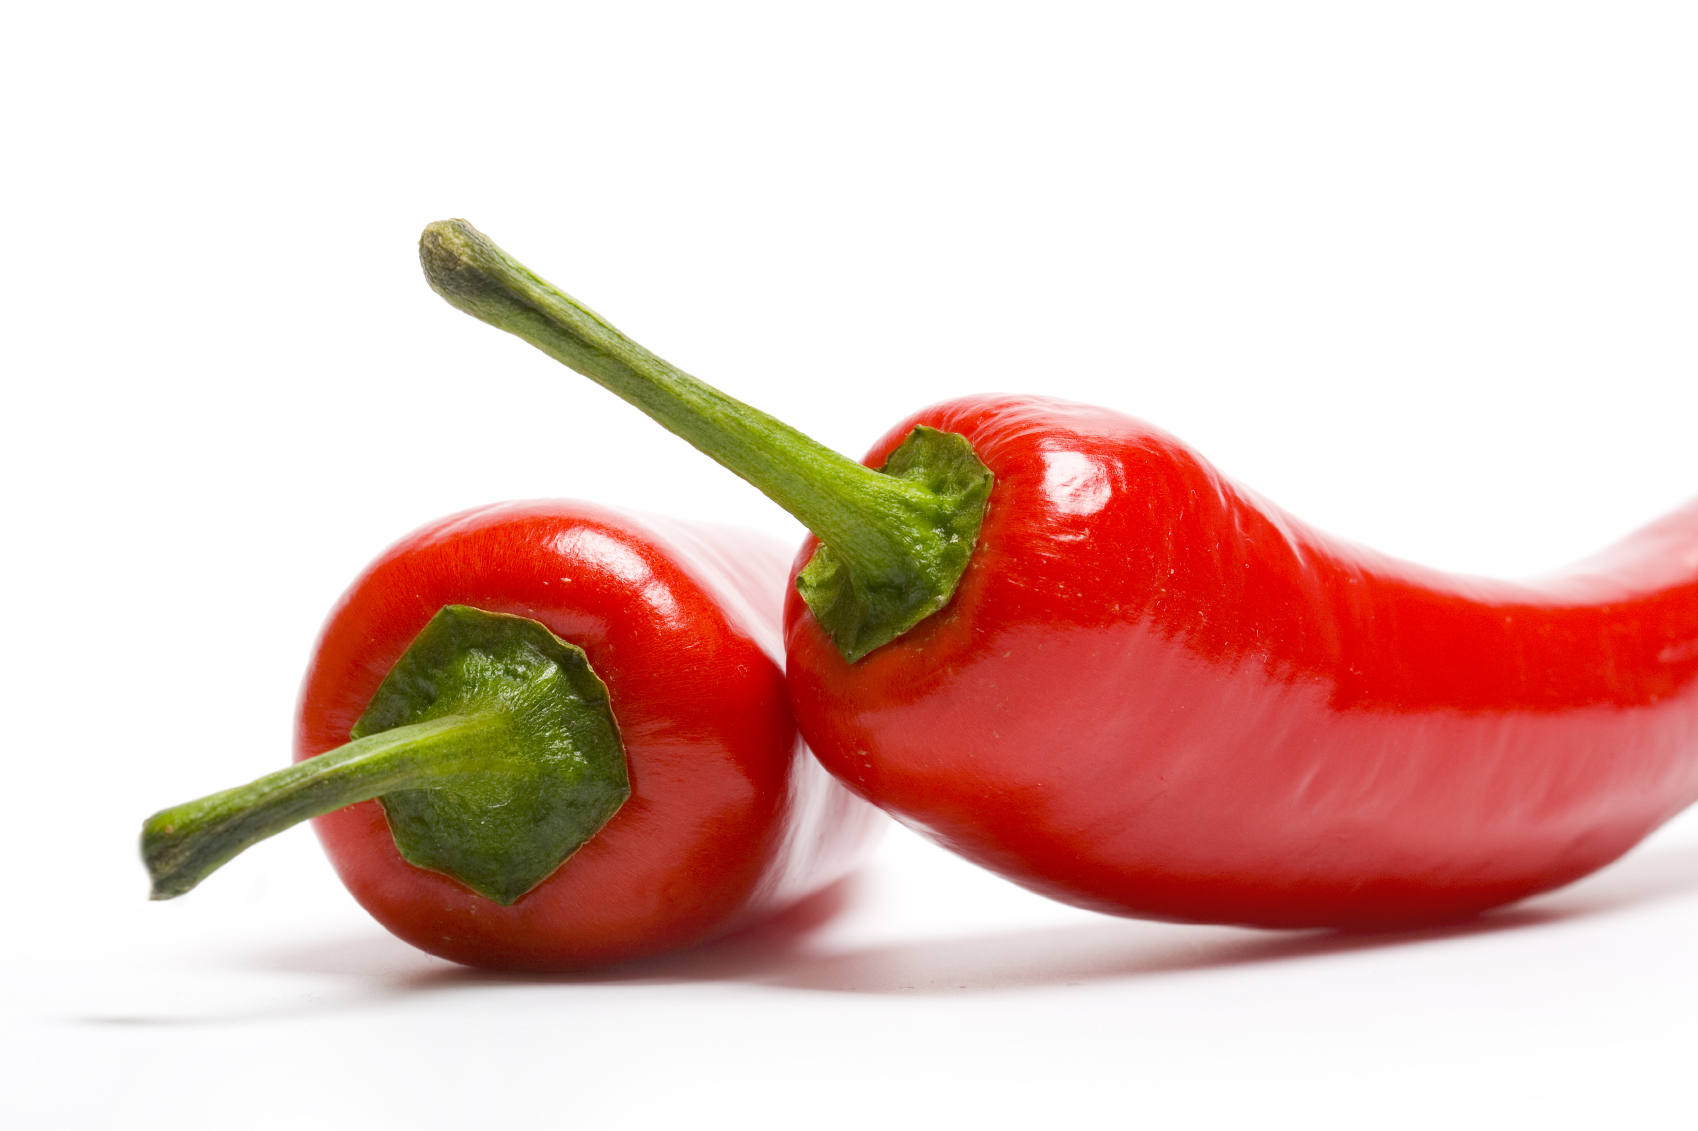 Don't wait until it's too late… Start preventing prostate cancer now with this fiery compound in hot peppers. New research shows it rips apart prostate cancer cells.